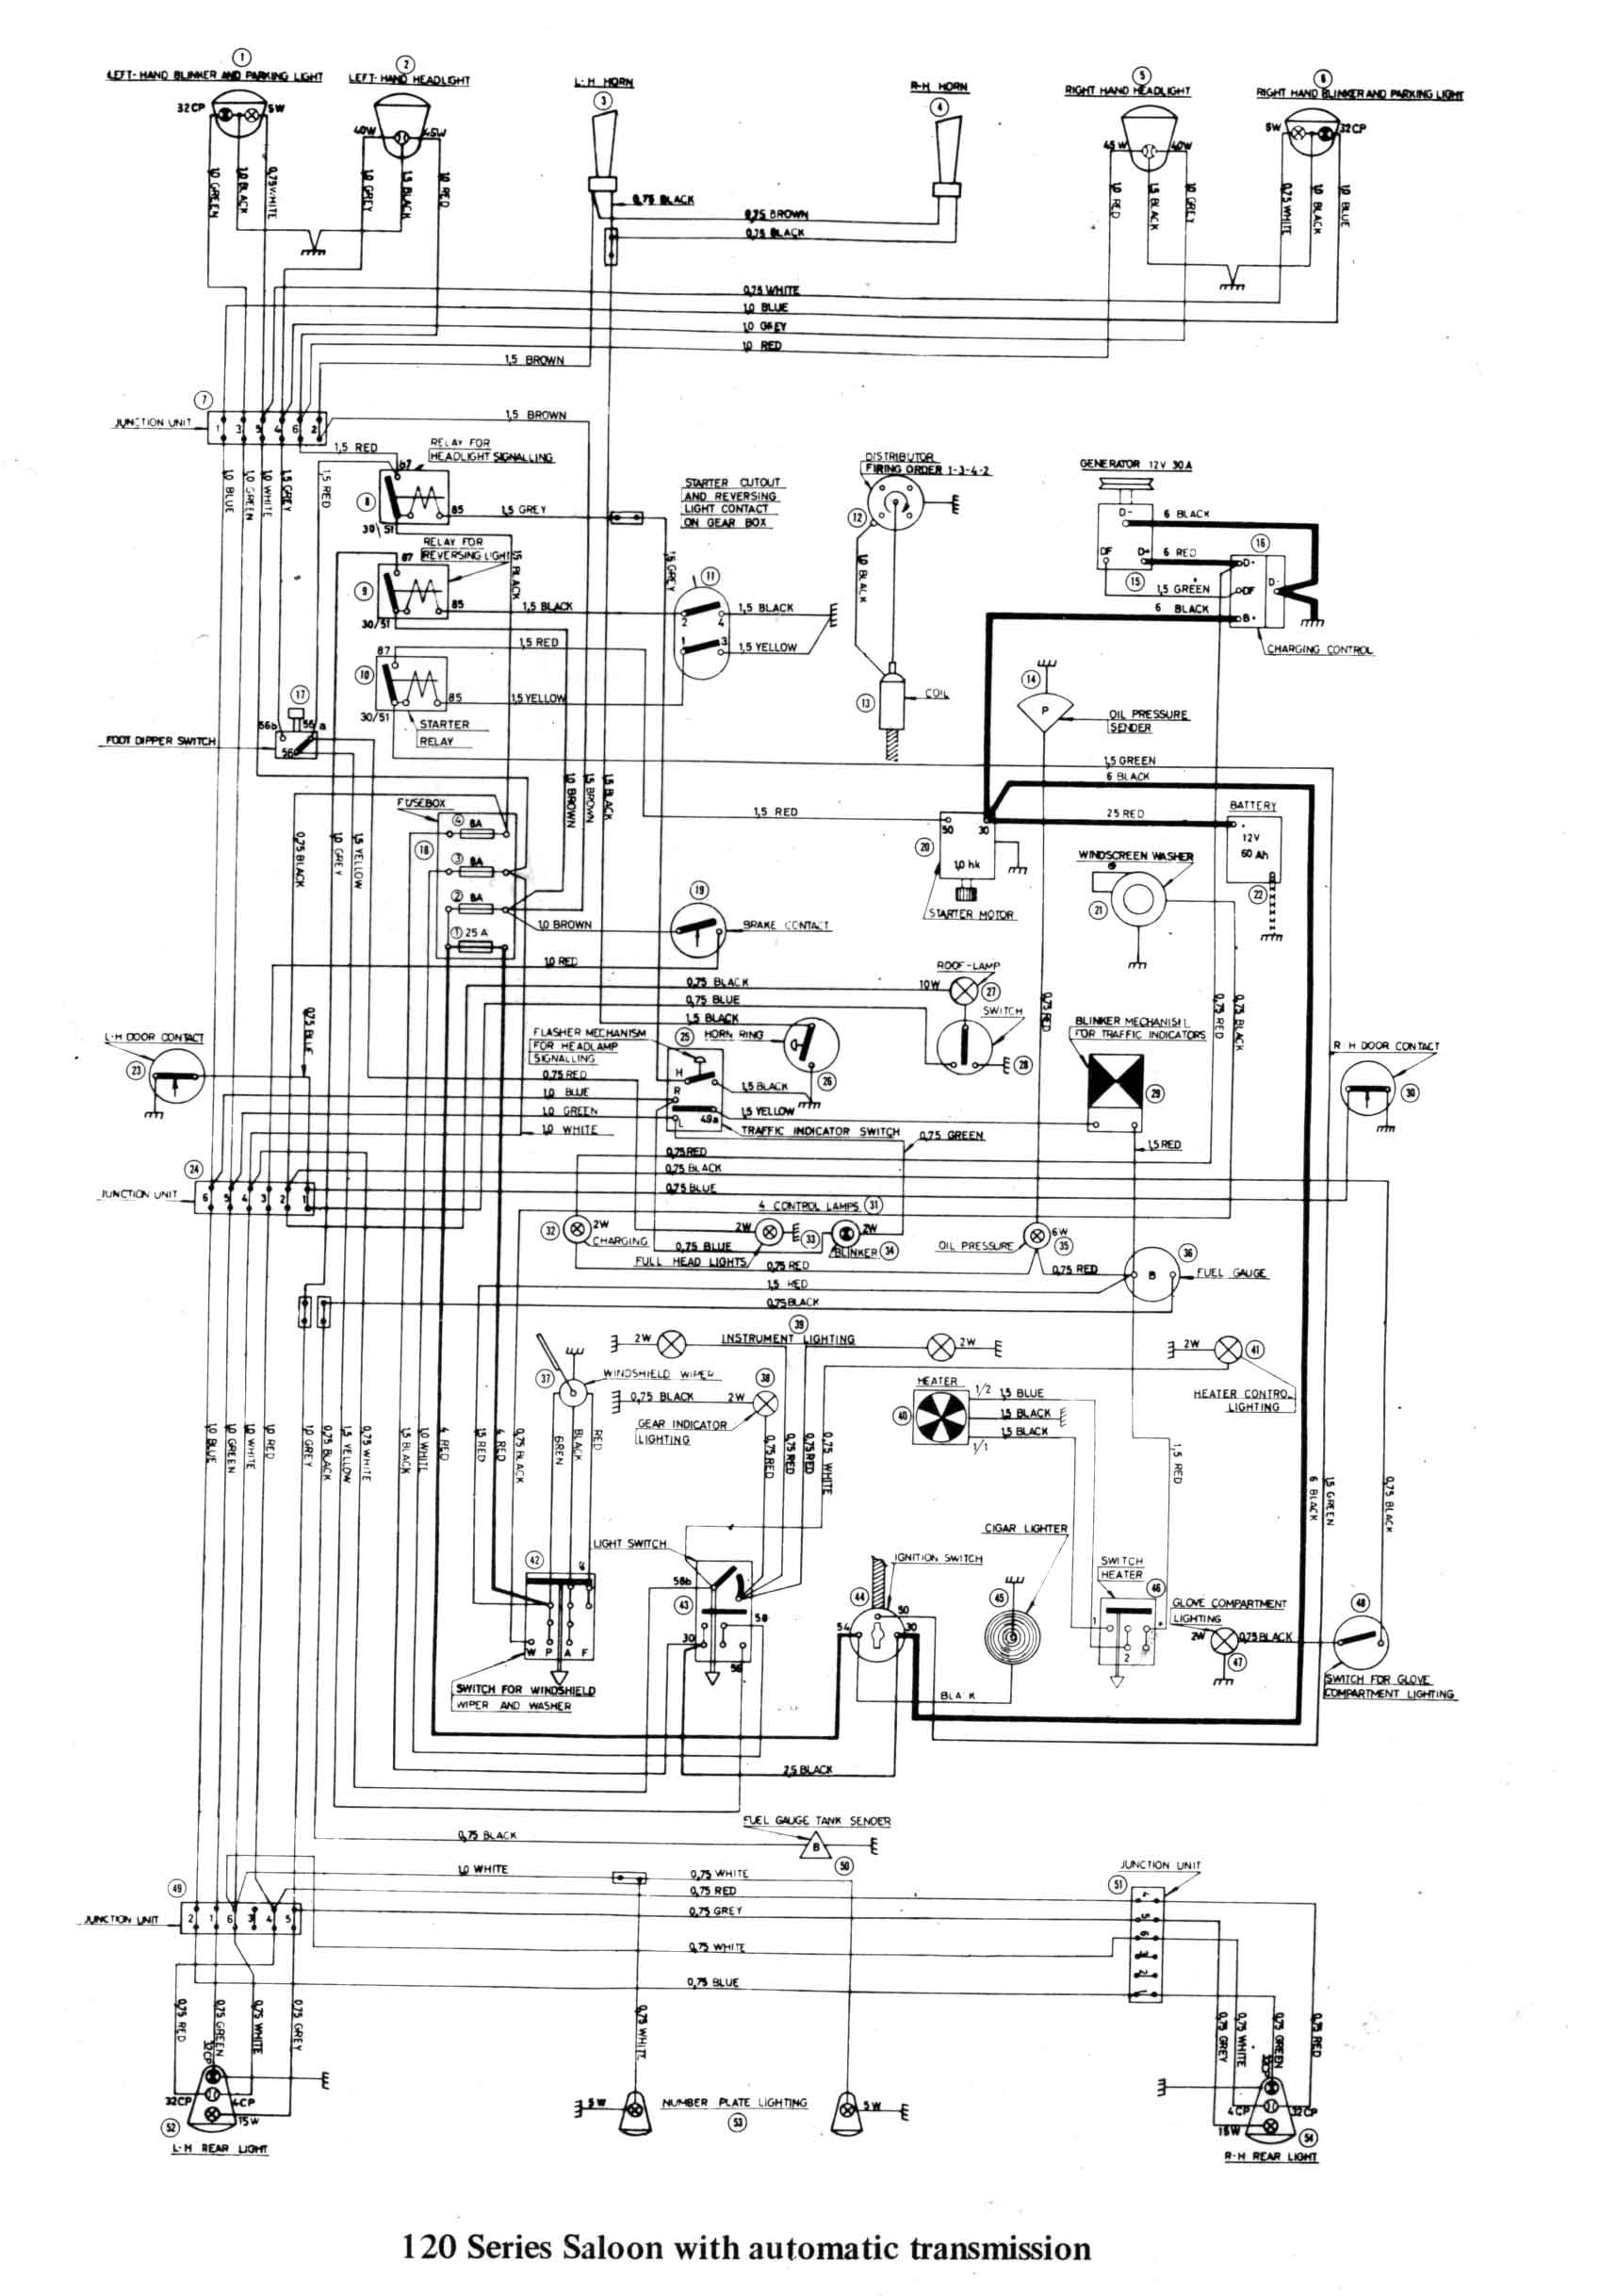 nitro alarm diagram nitro database wiring diagram images nitro alarm diagram